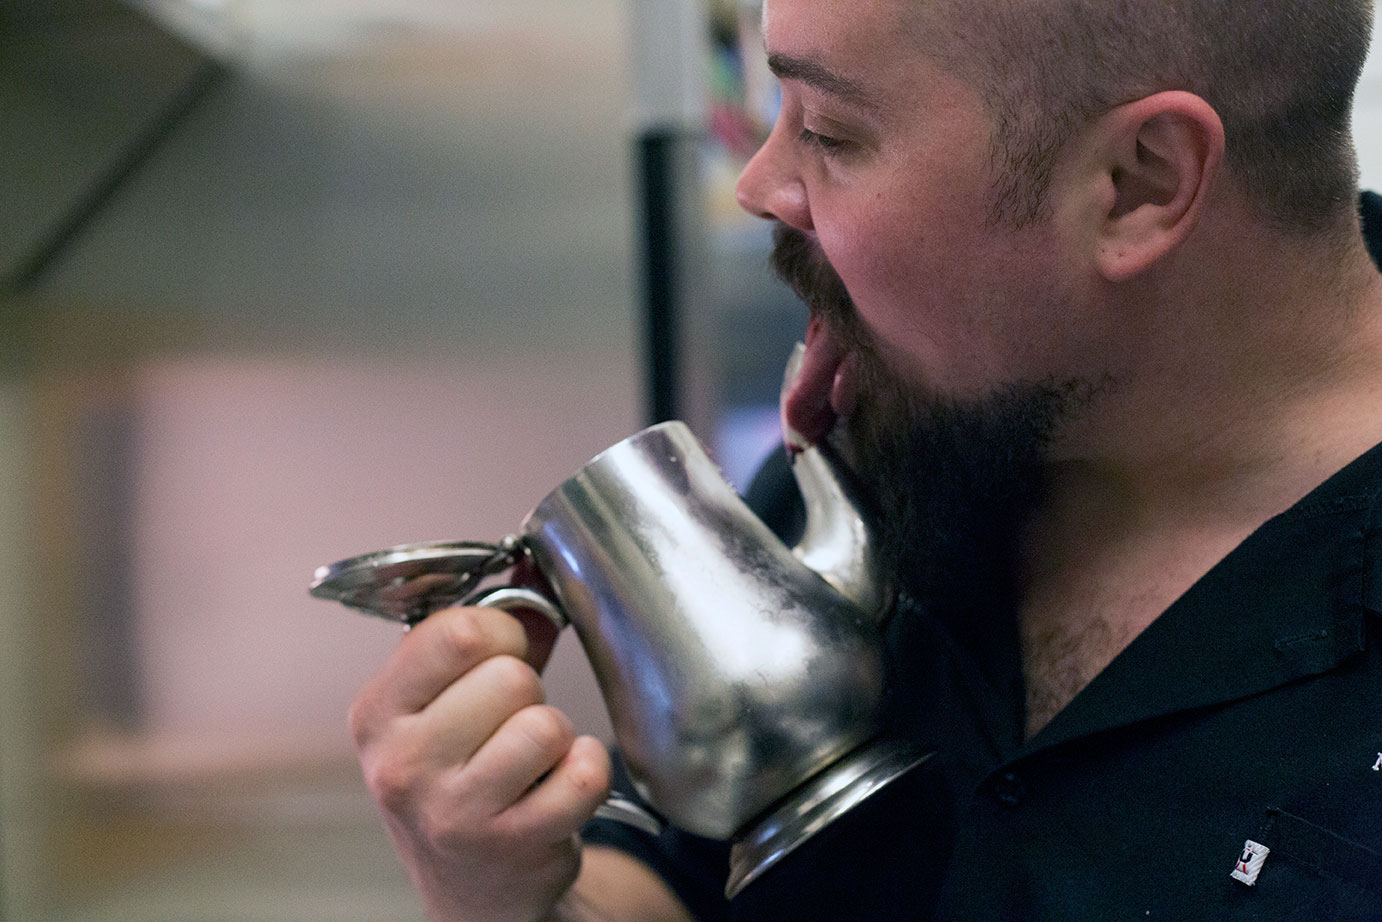 isaac-licking-silver-container